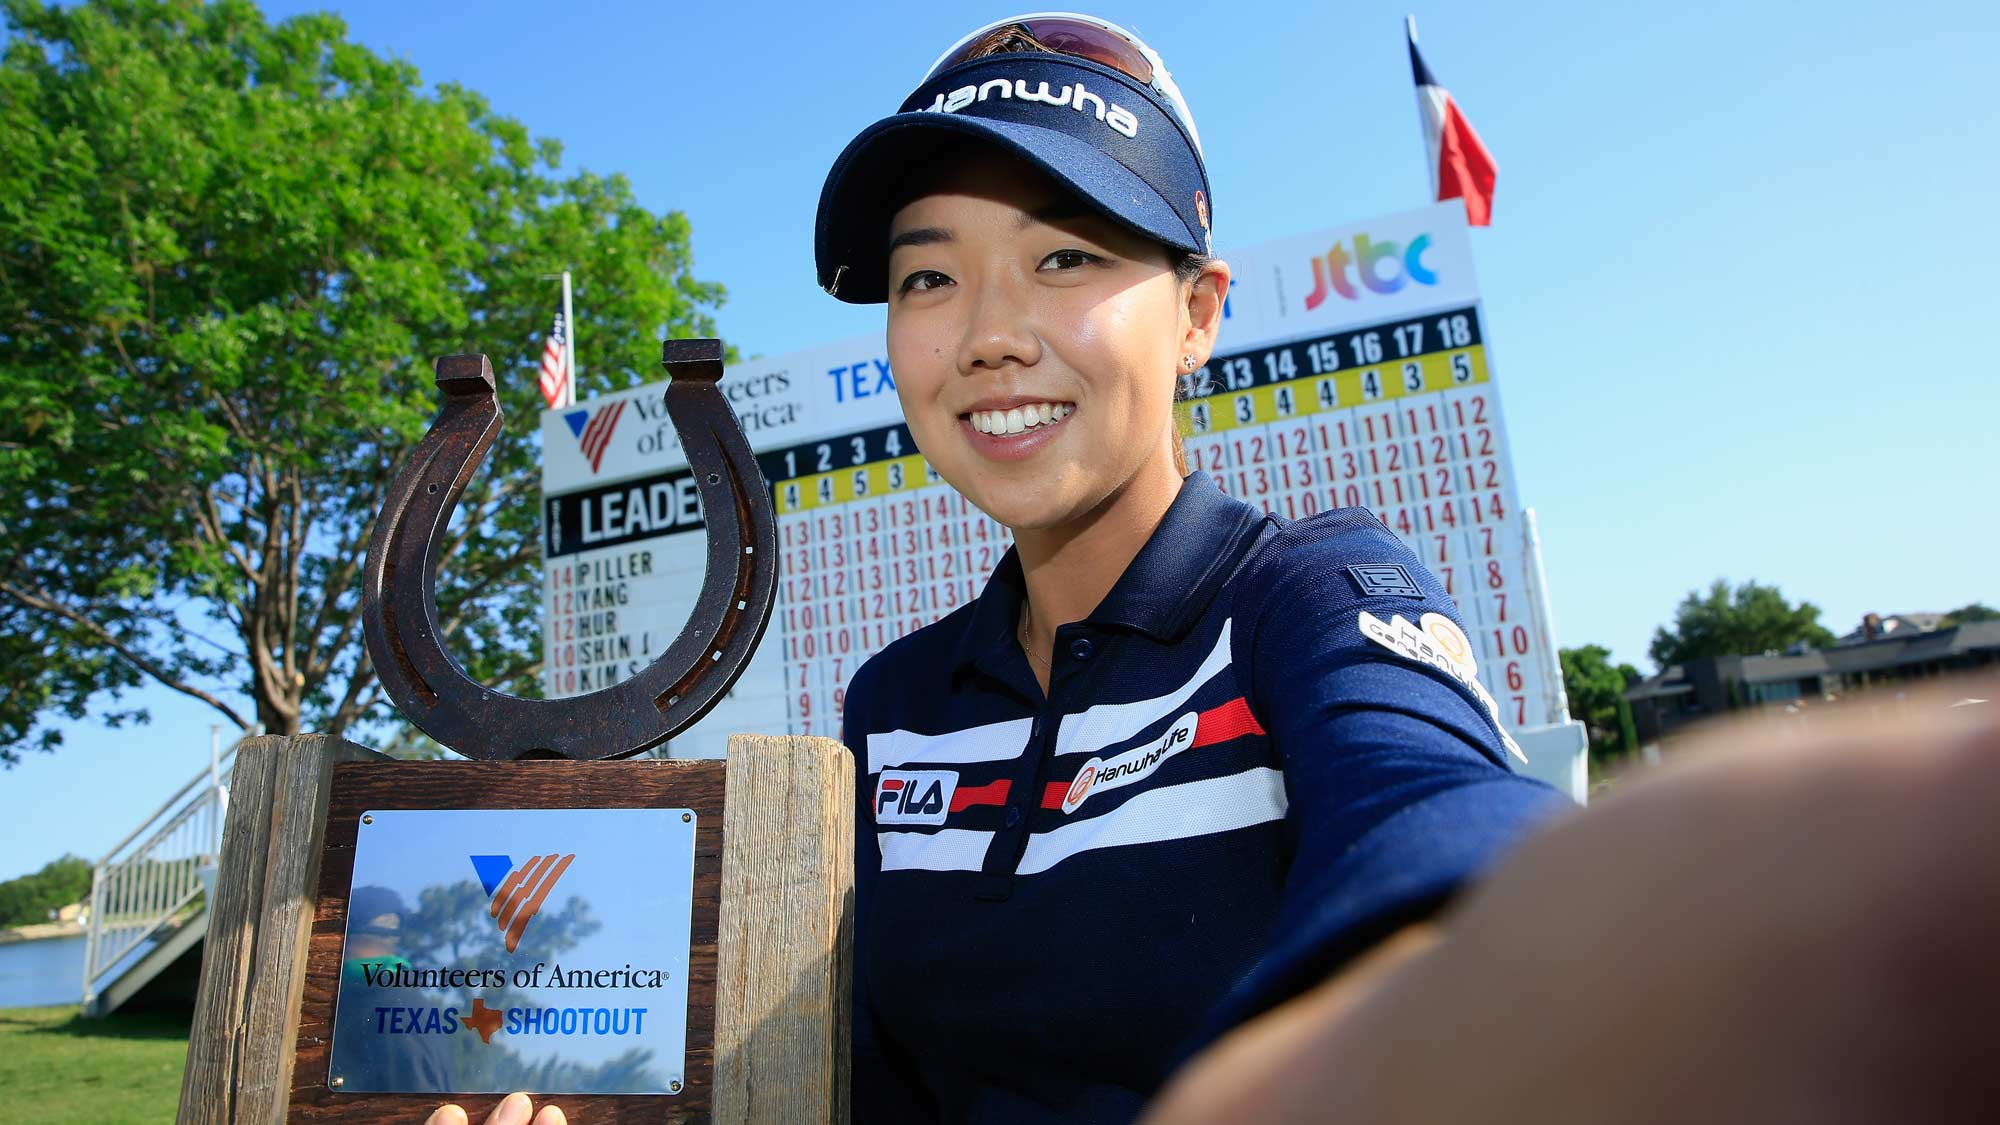 Jenny Shin poses for a simulated 'Selfie' with the trophy after her two-stroke victory at the Volunteers of America Texas Shootout